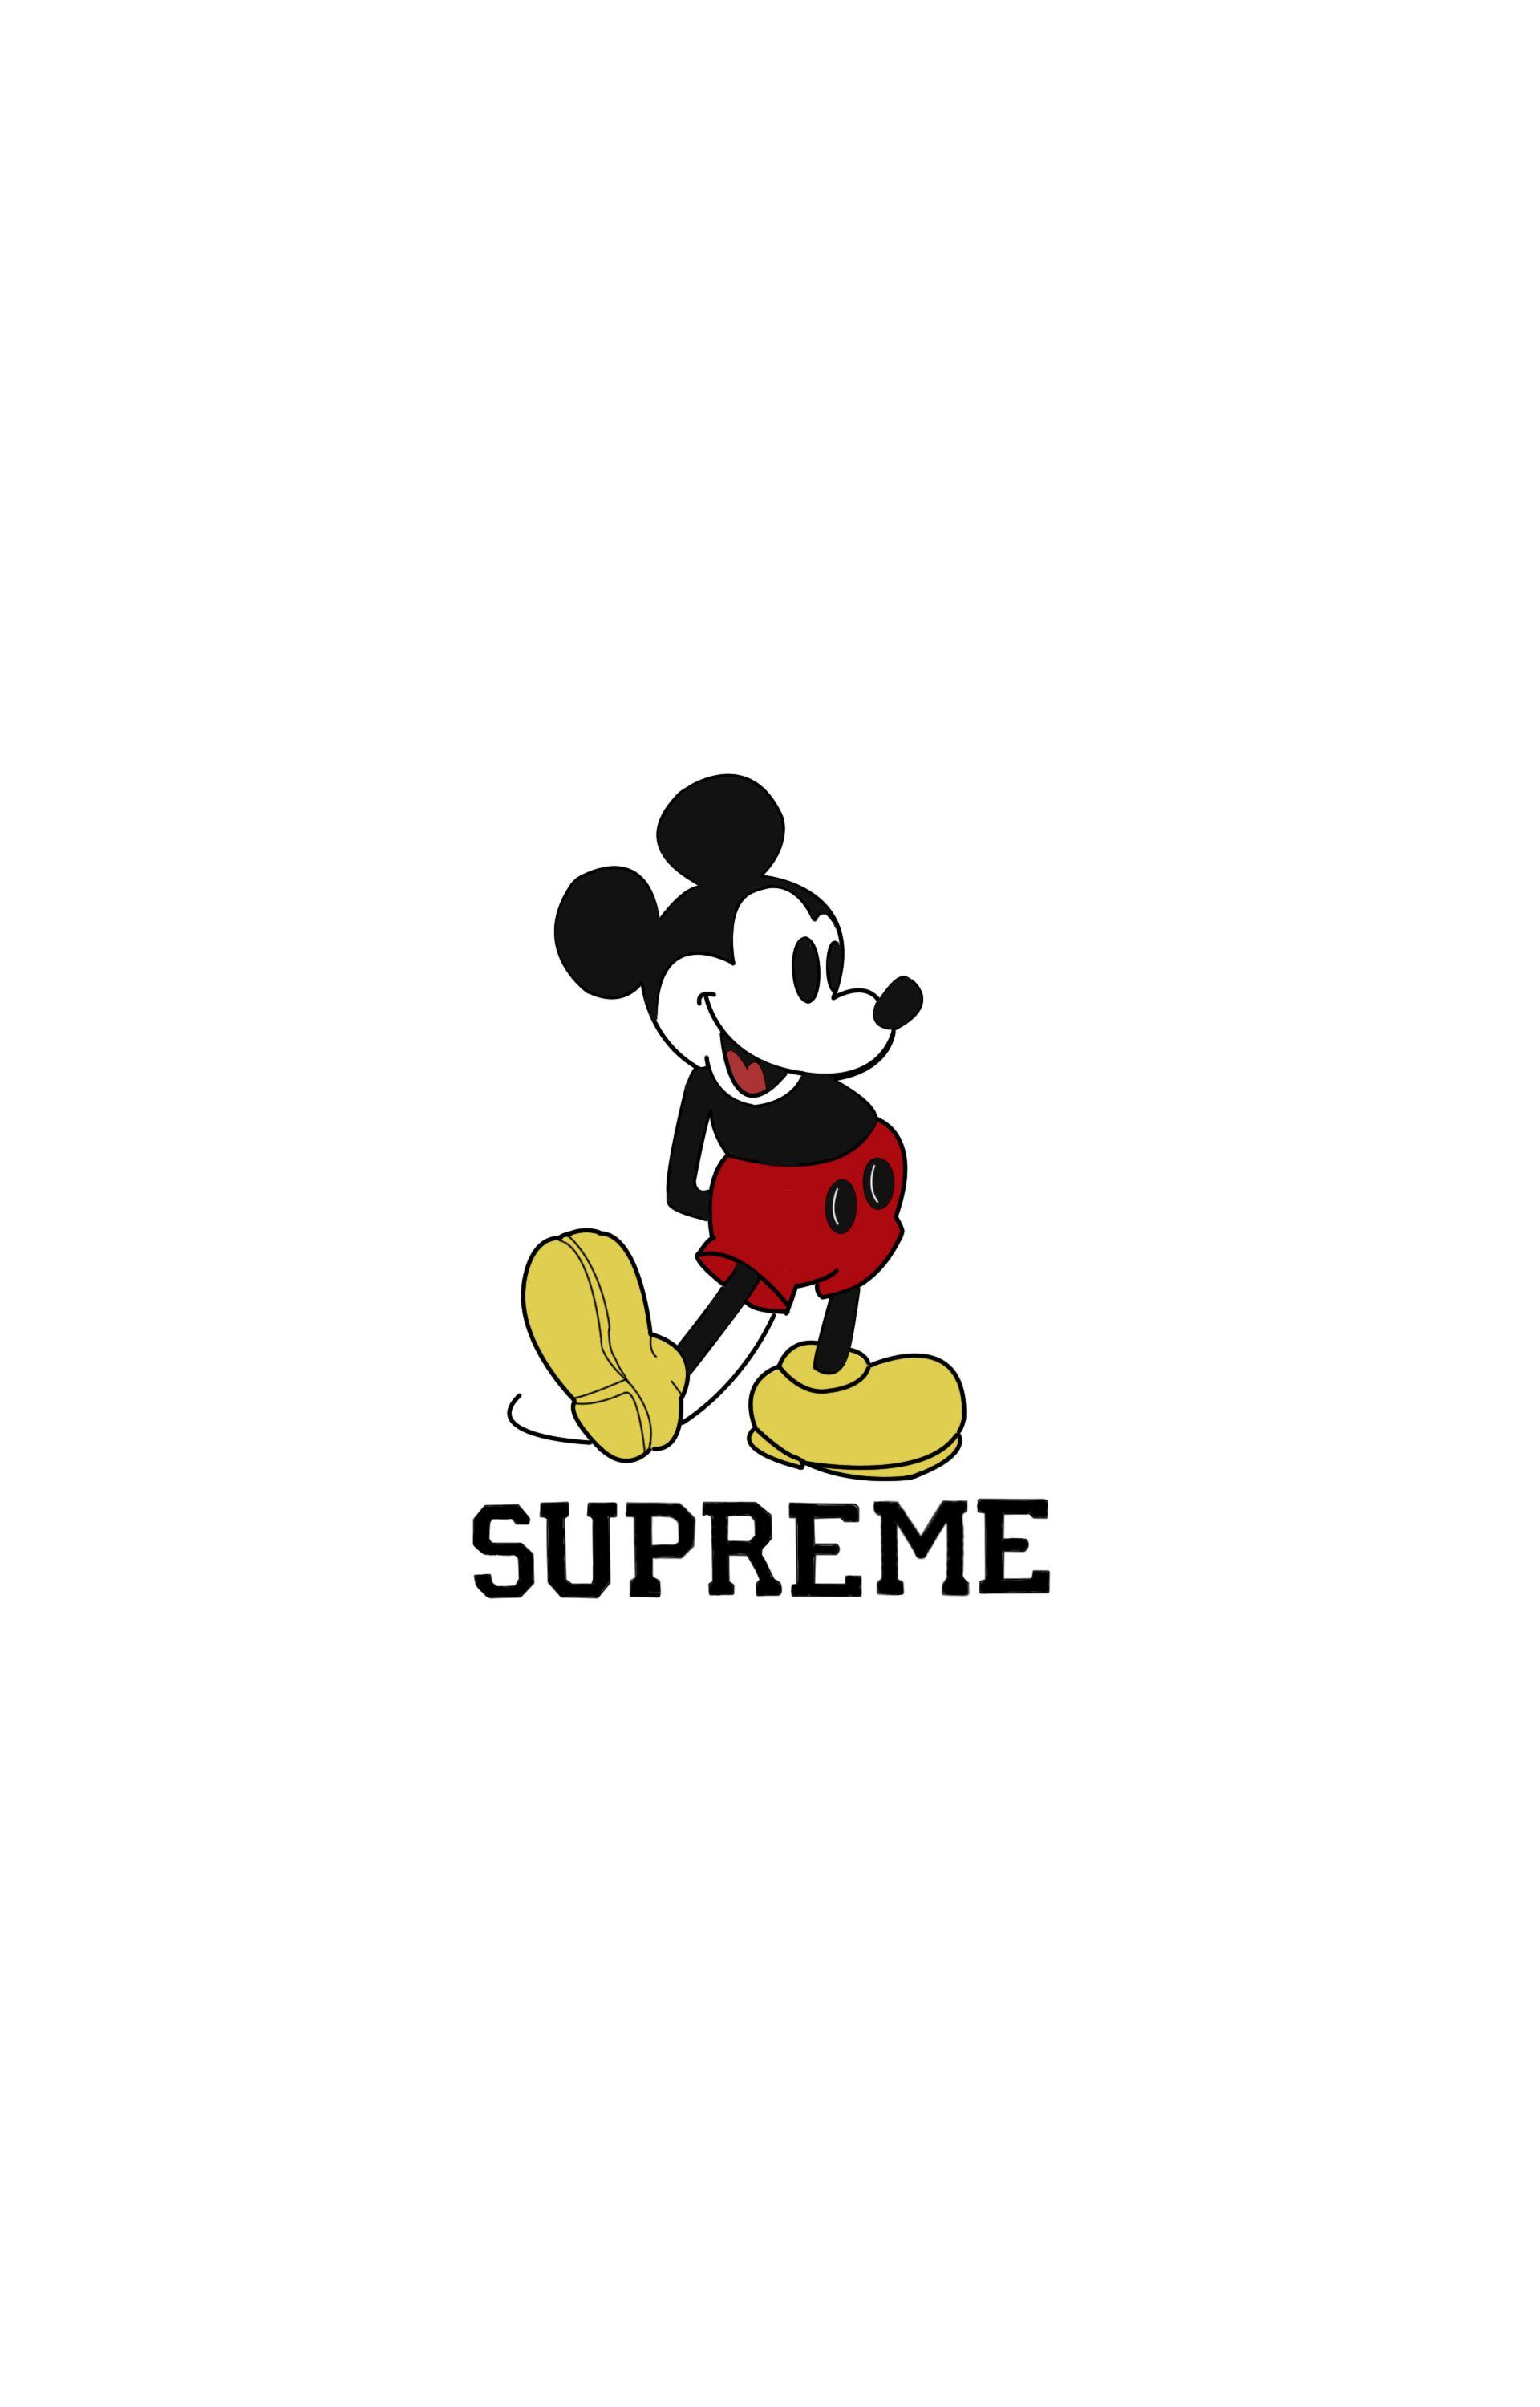 Supreme Wallpaper Iphone 7 Babangrichie Org